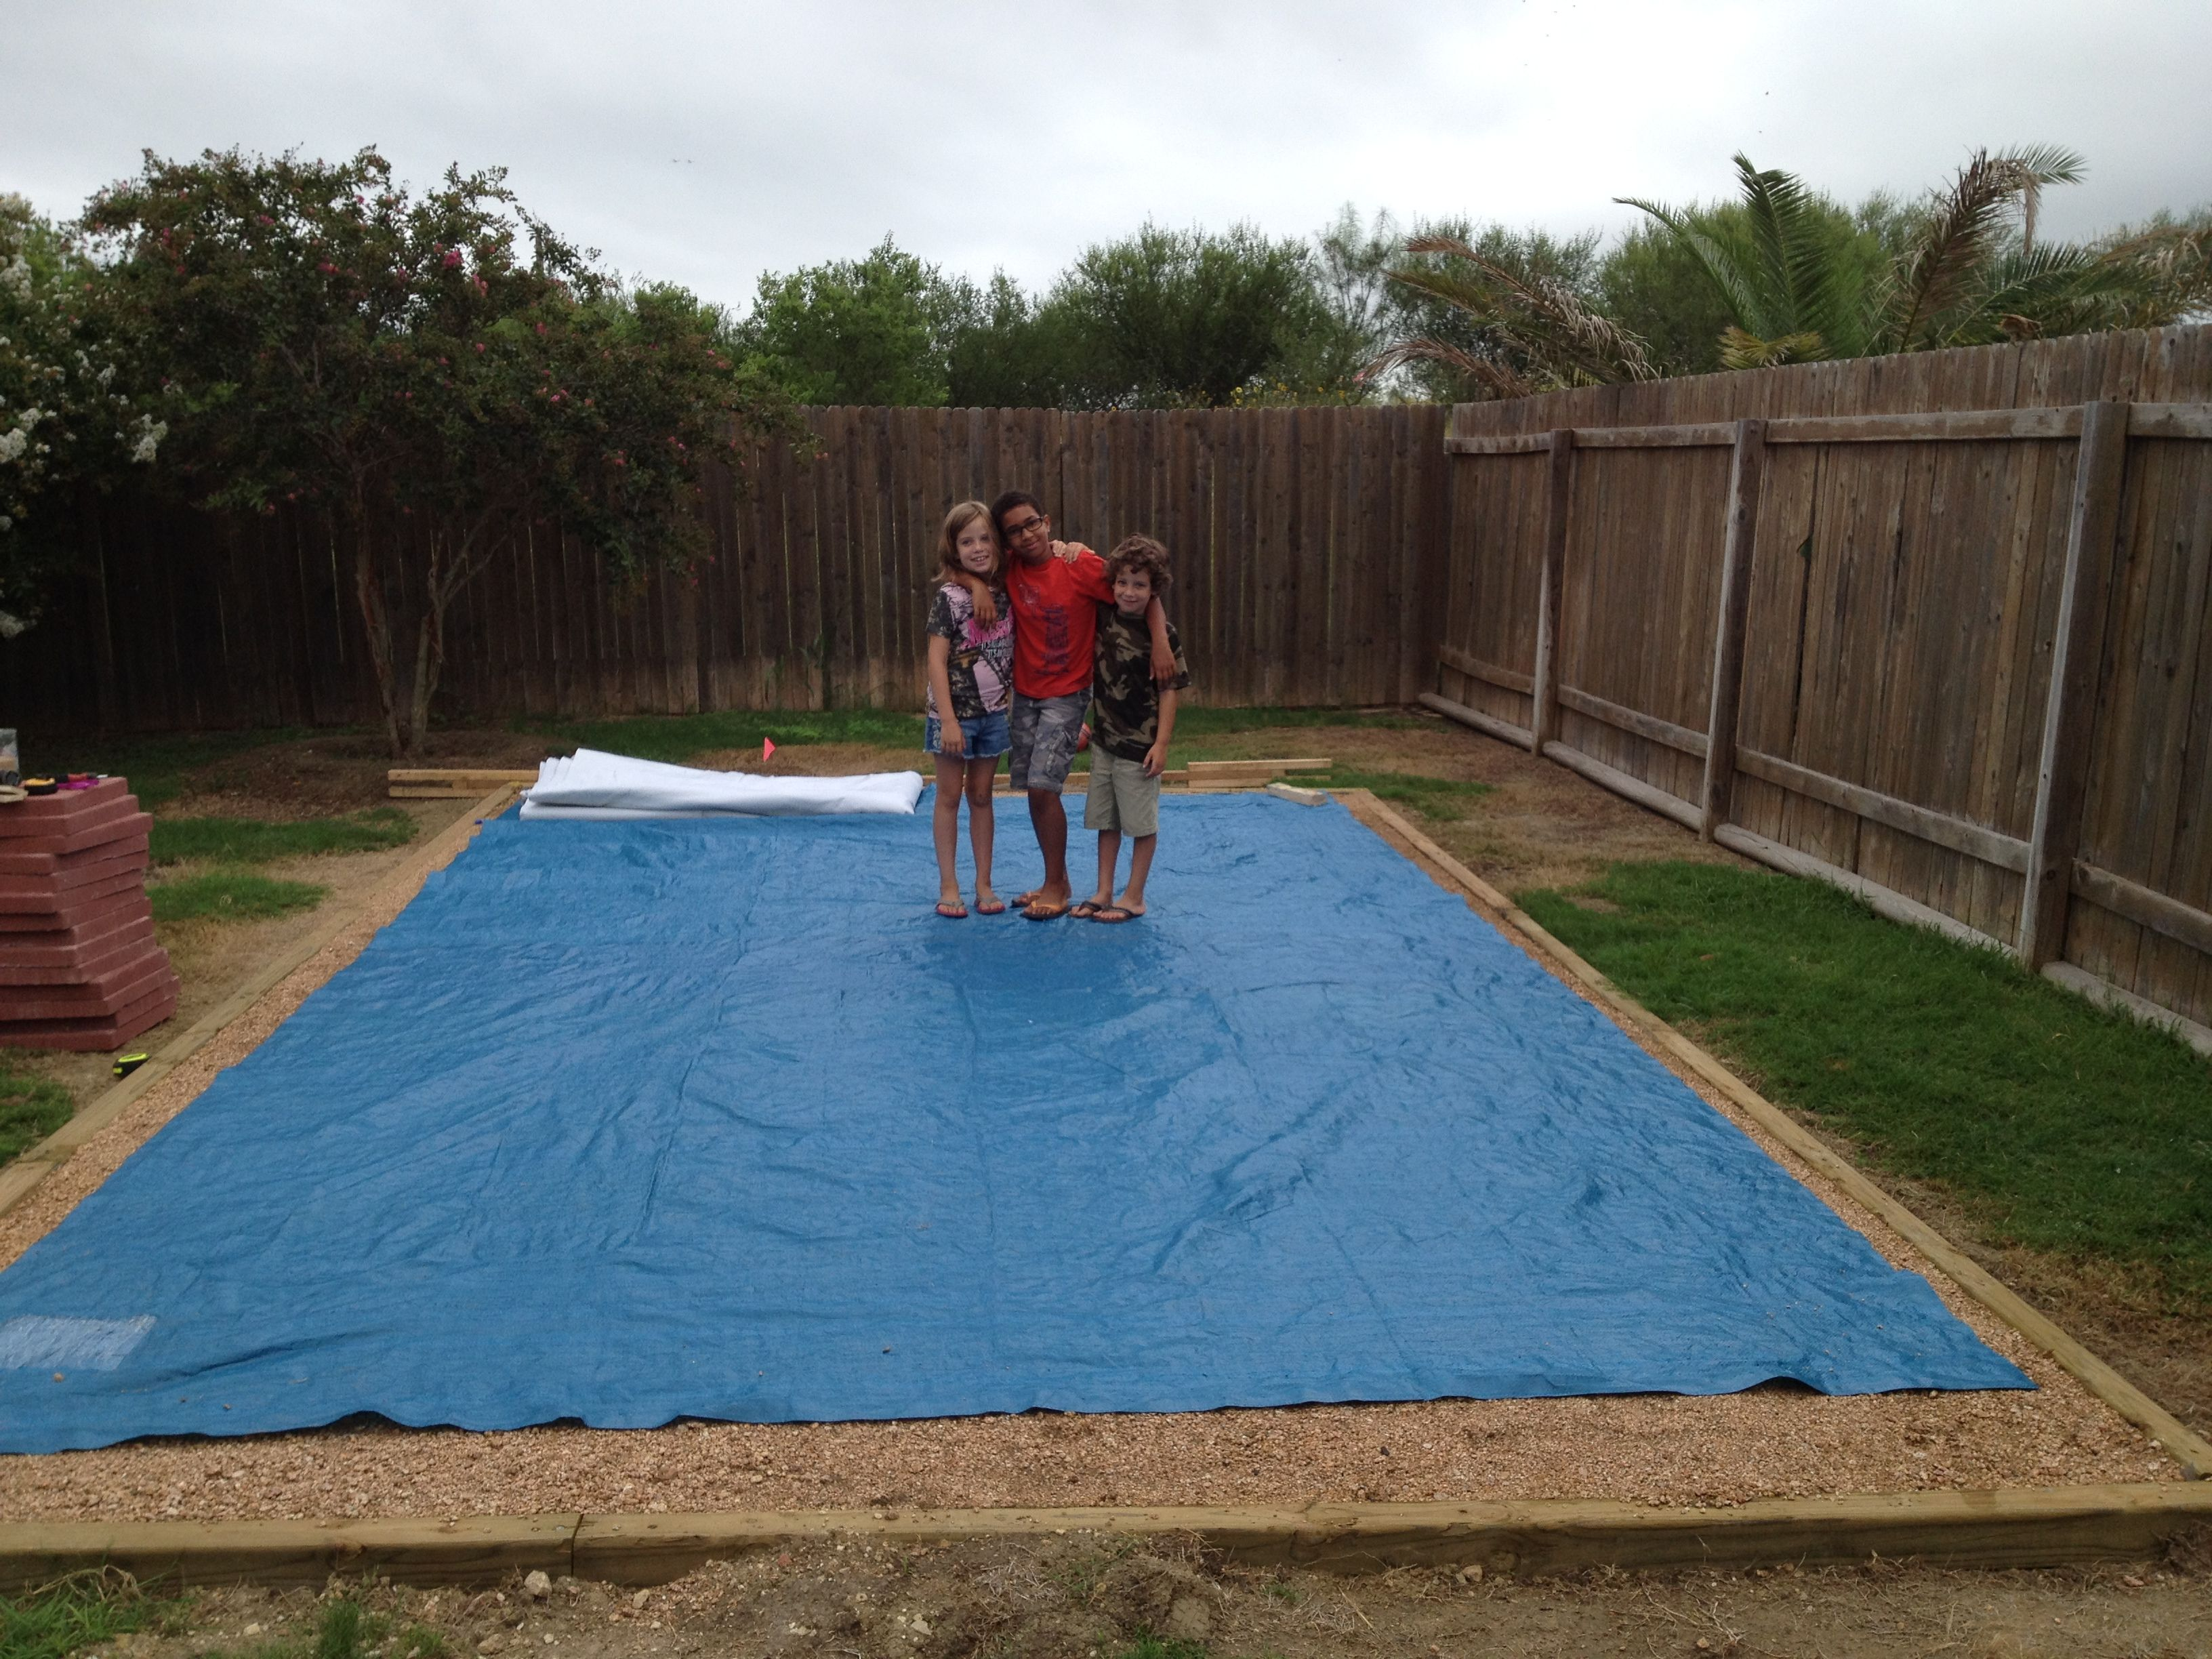 Tarp out getting ready to put gorilla pad down | Pool ...